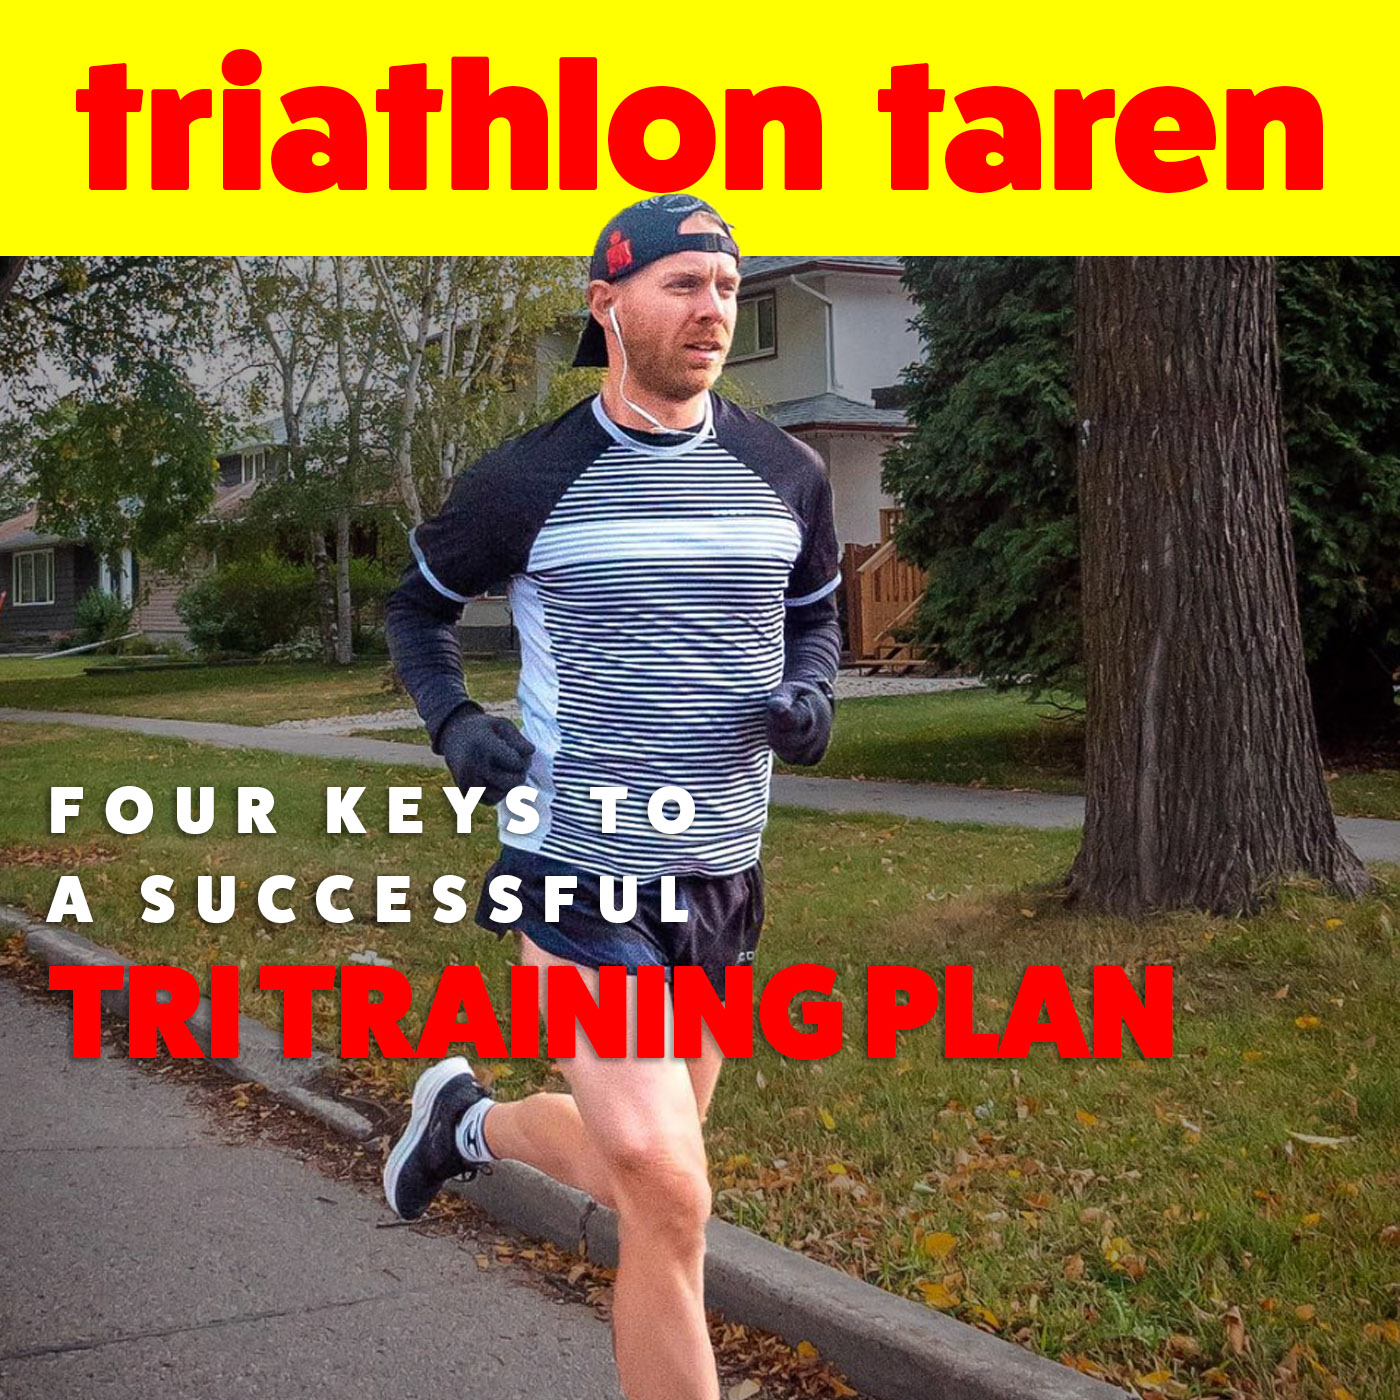 The 4 Key Ingredients for a Successful Triathlon Training Plan